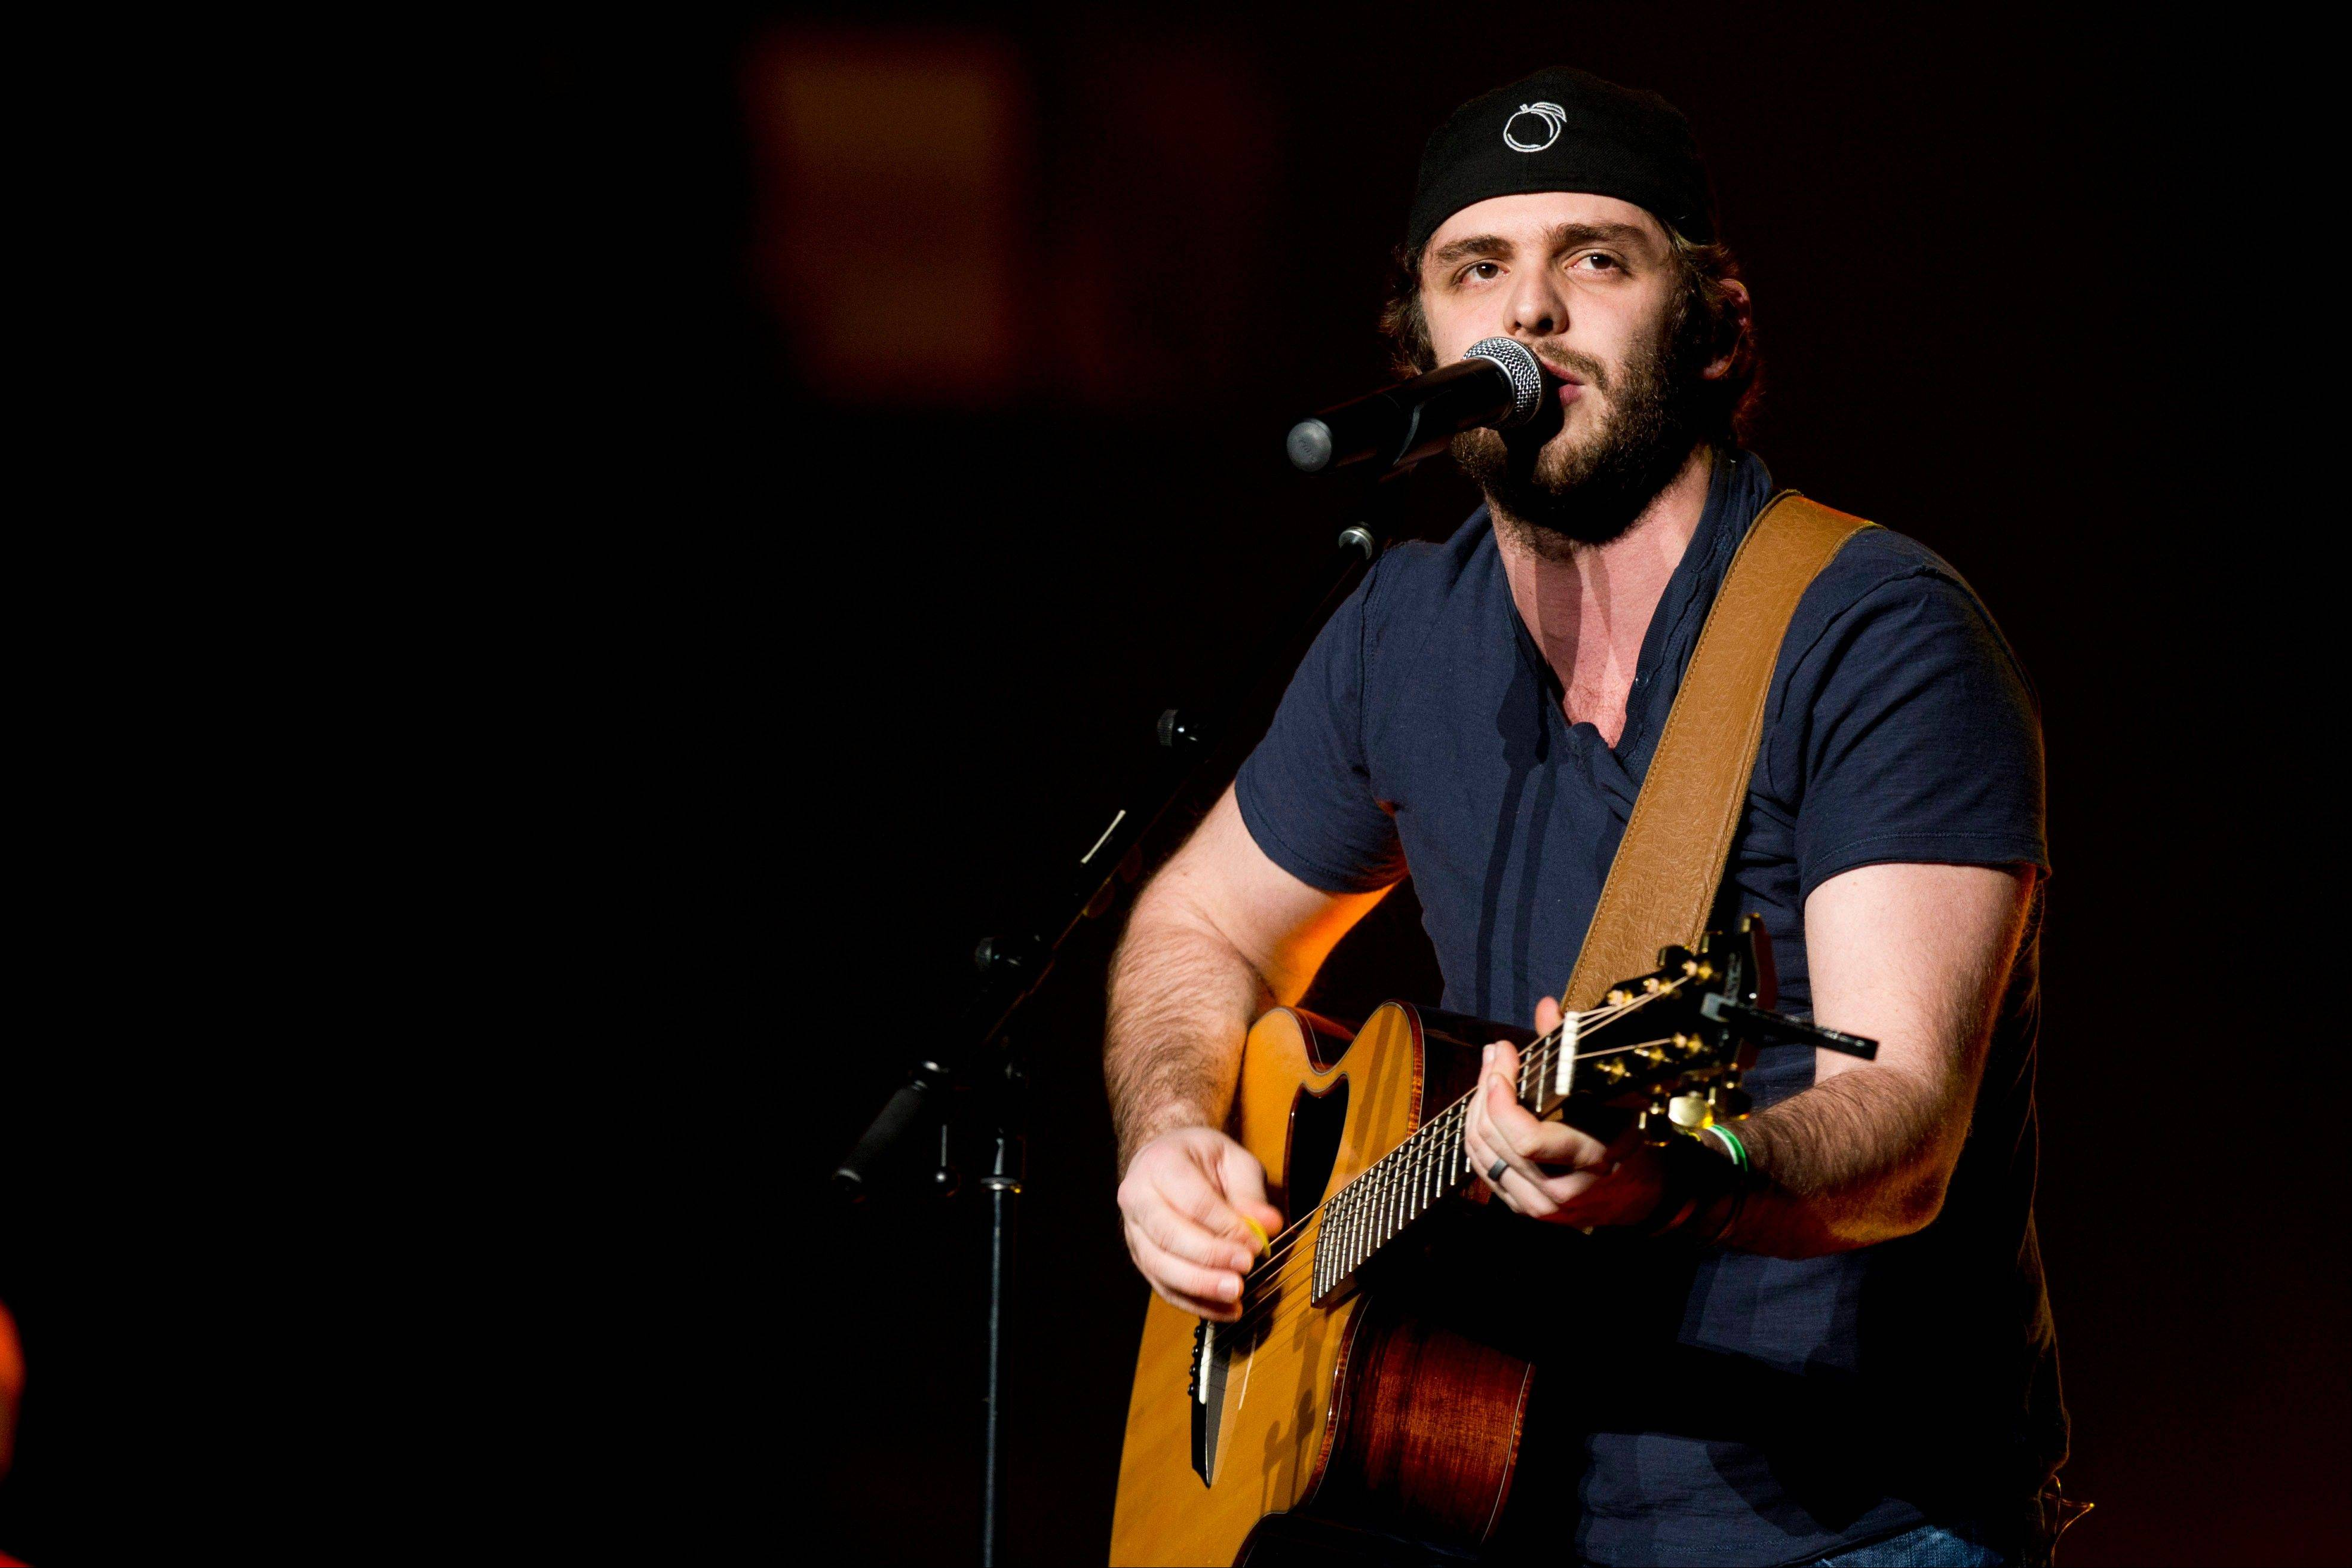 Thomas Rhett opens for Jason Aldean at Madison Square Garden in New York. Growing up watching his father, Rhett Akins, on tour gave the 23-year-old Thomas Rhett some insight at a young age about how to deal with nerves and crowds.